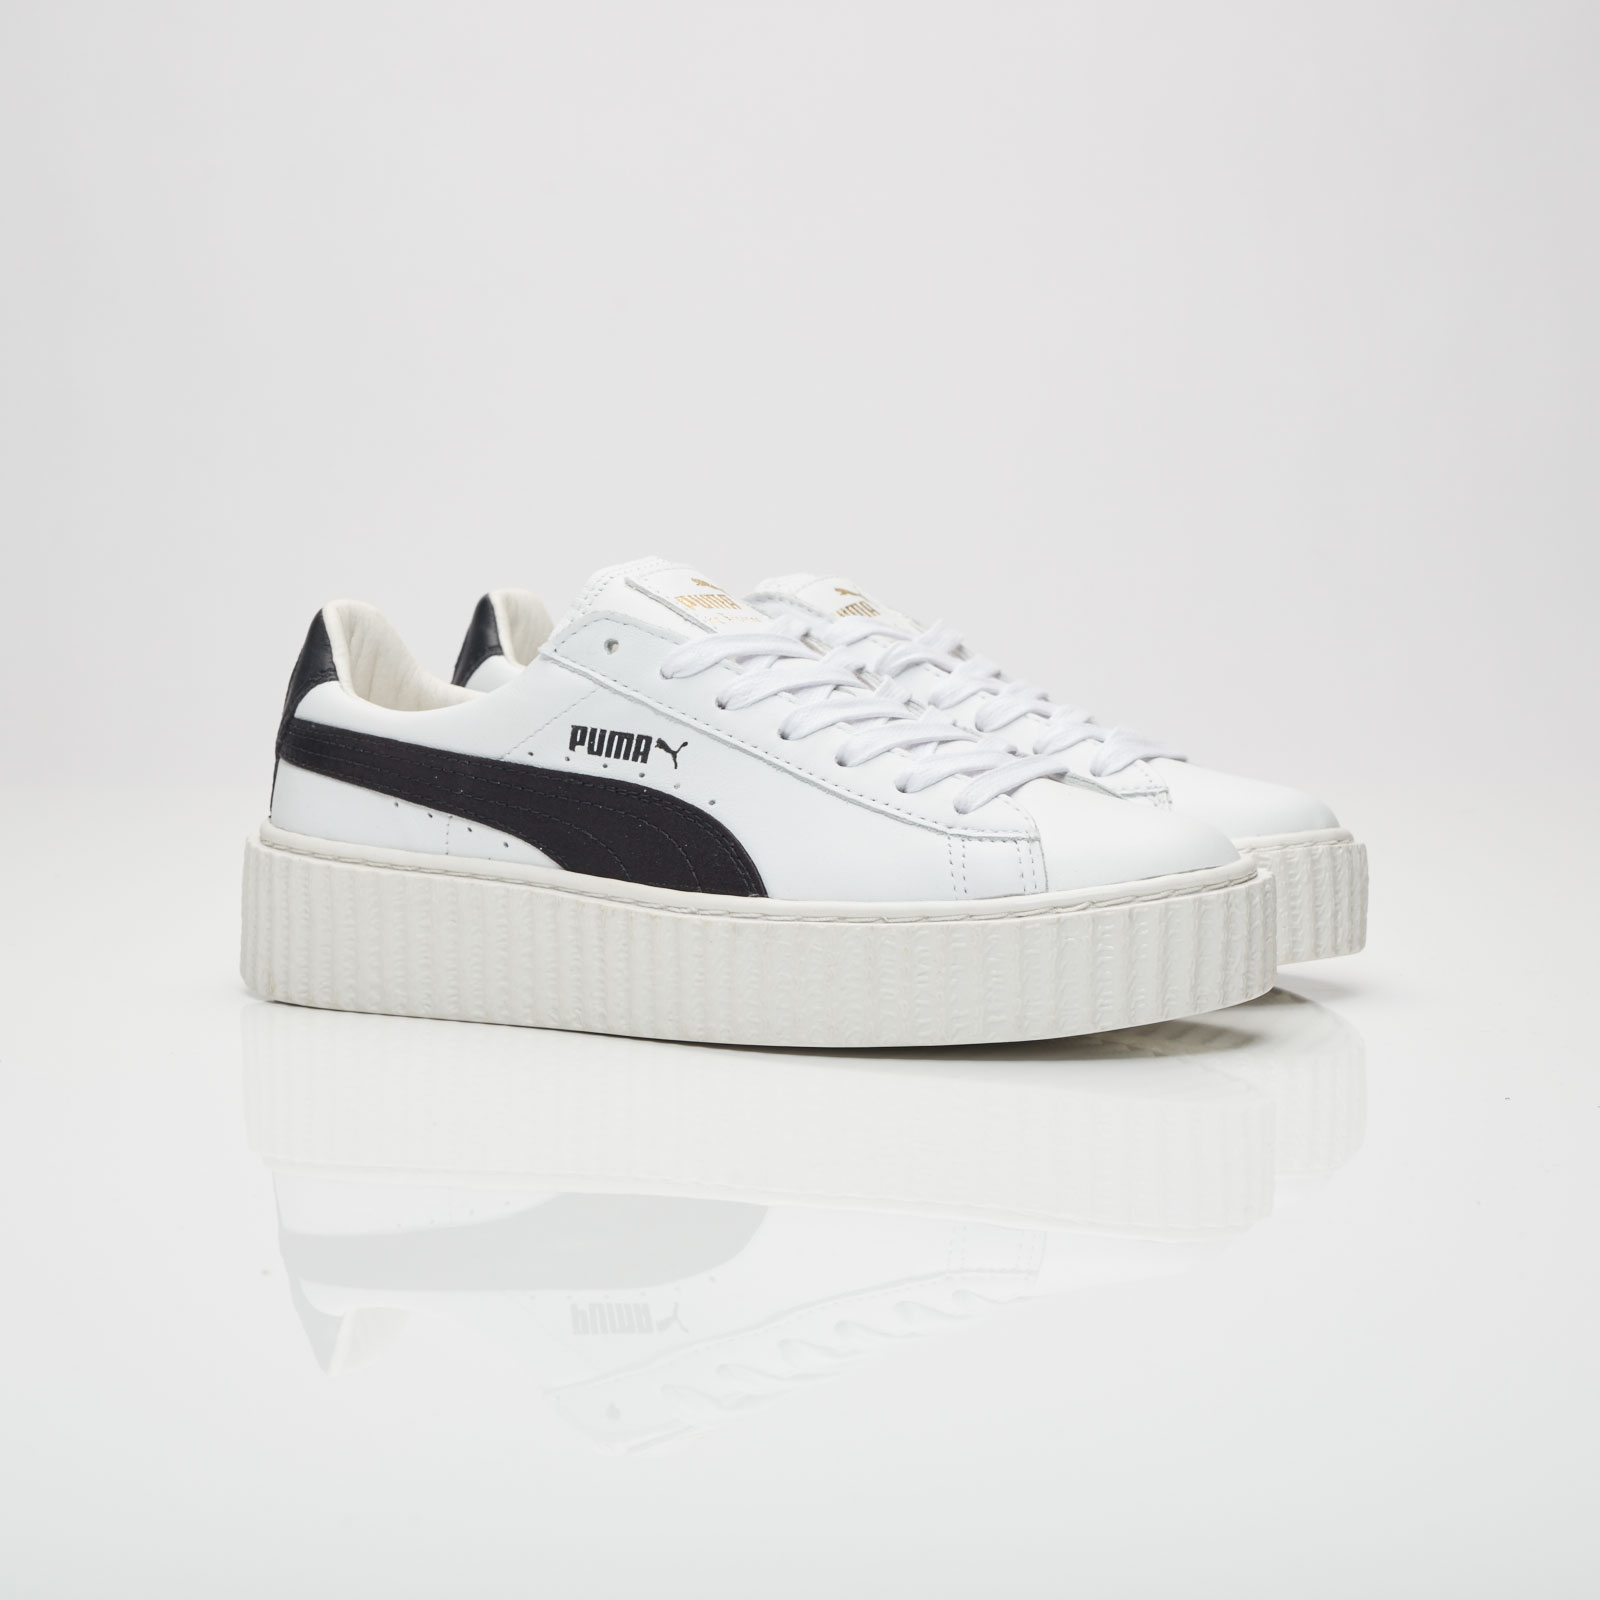 fd78a54c6 Puma Creeper Cracked Leather - 364462-01 - Sneakersnstuff | sneakers ...